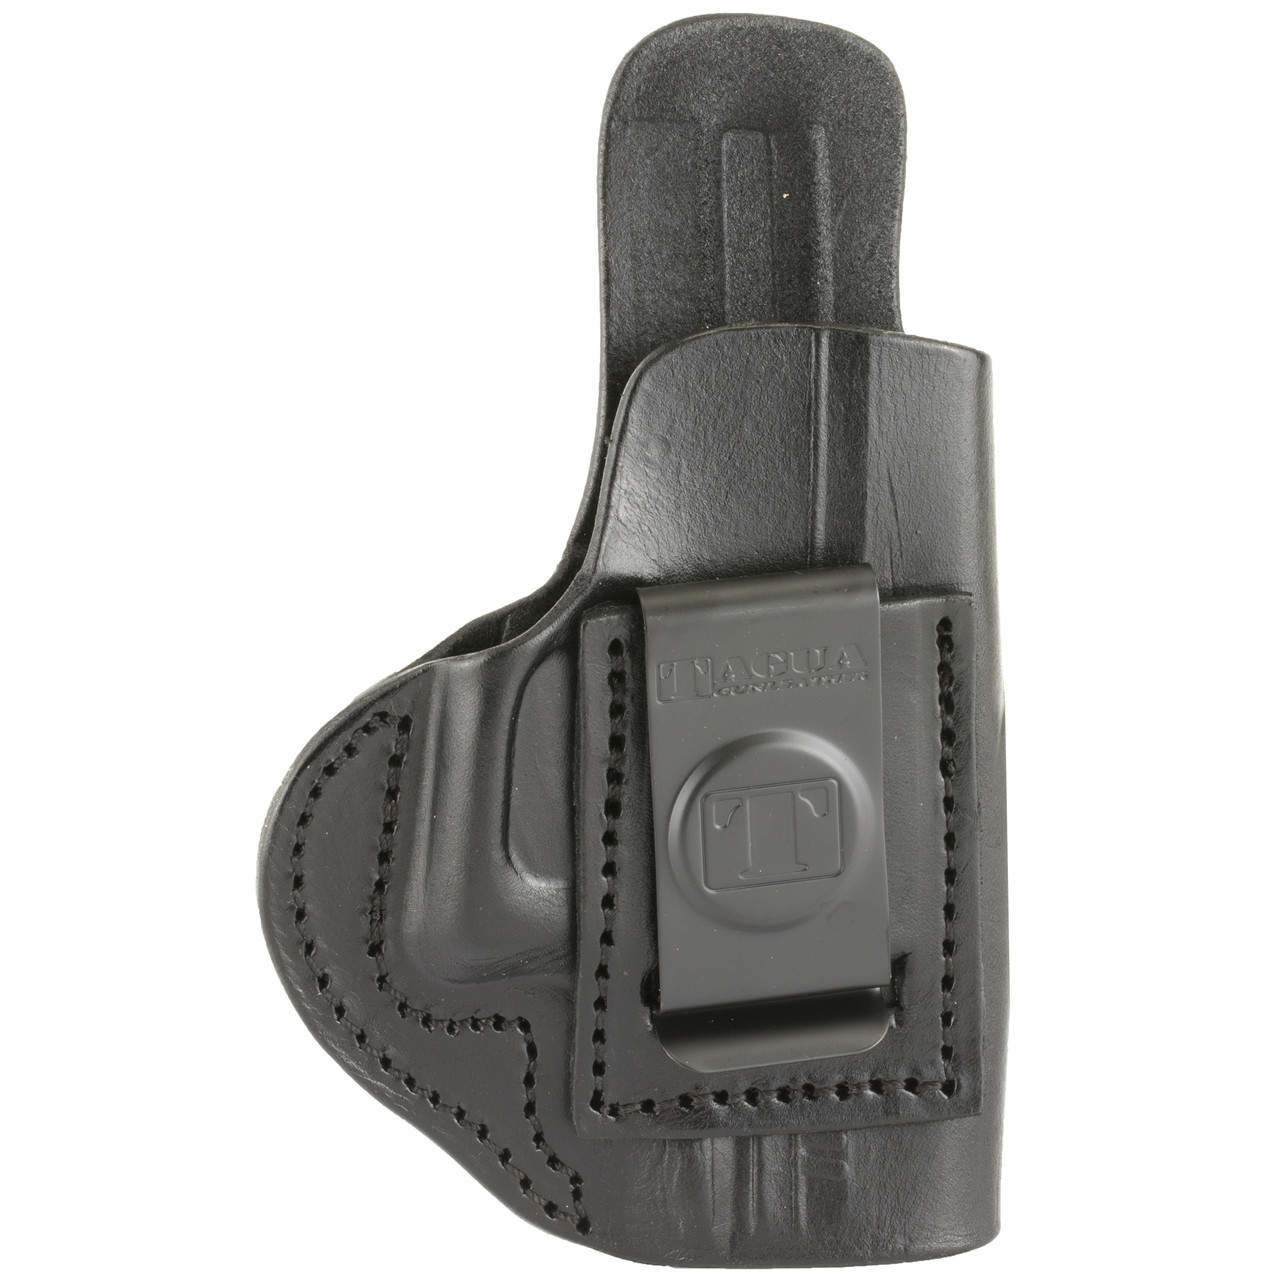 Tagua Inside The Pant Holster, Fits Walther P22, 2 3